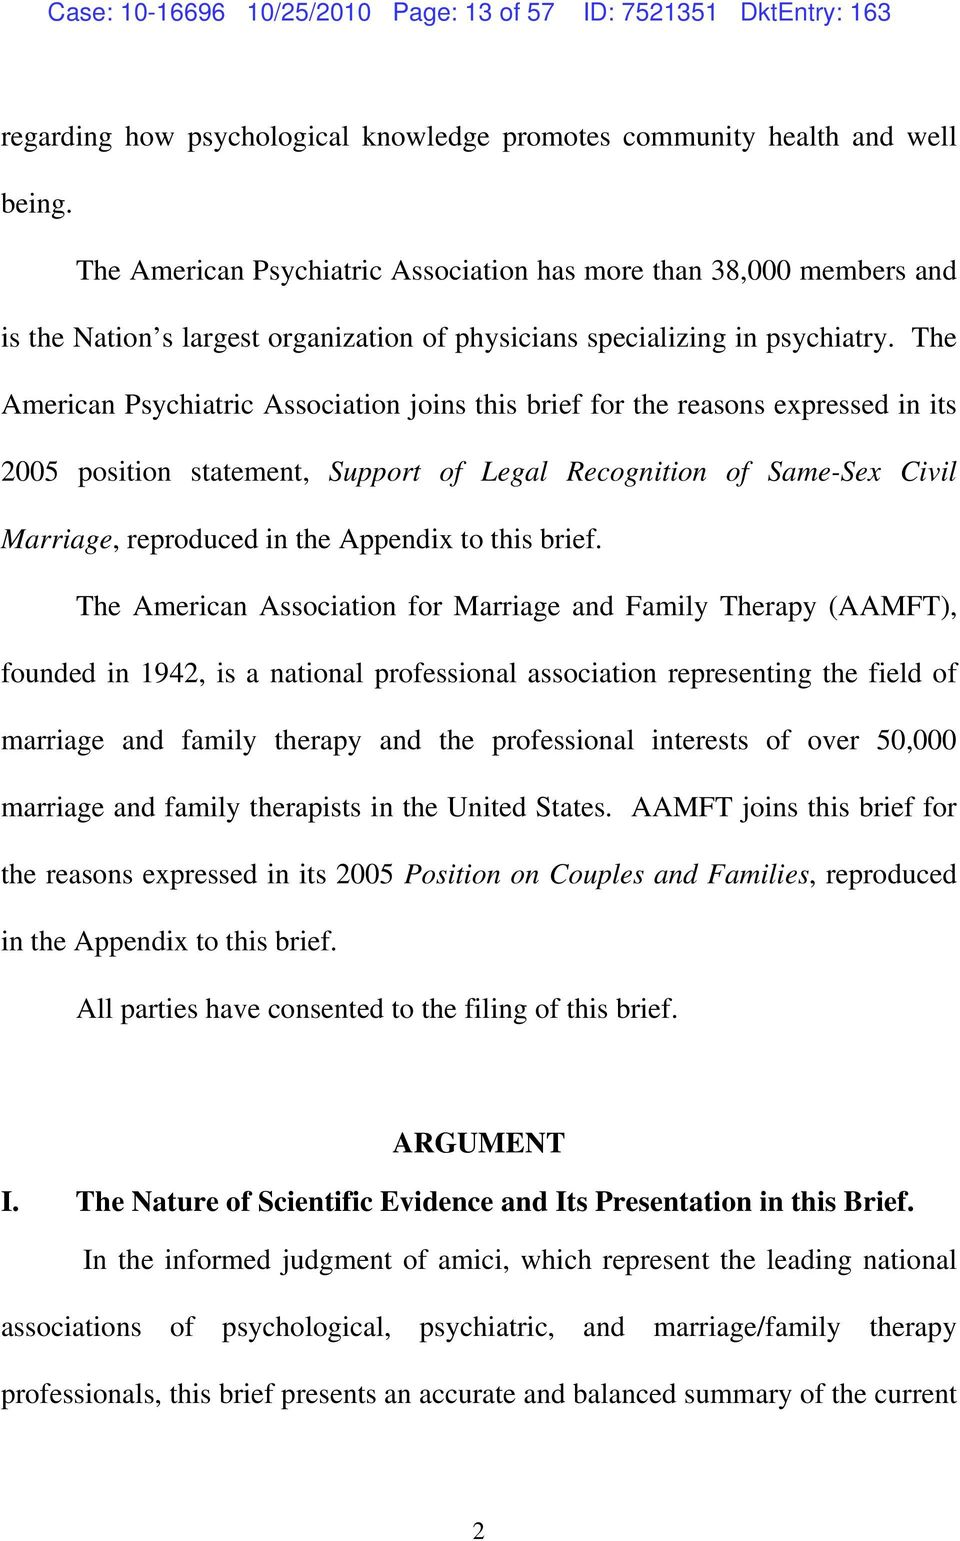 The American Psychiatric Association joins this brief for the reasons expressed in its 2005 position statement, Support of Legal Recognition of Same-Sex Civil Marriage, reproduced in the Appendix to